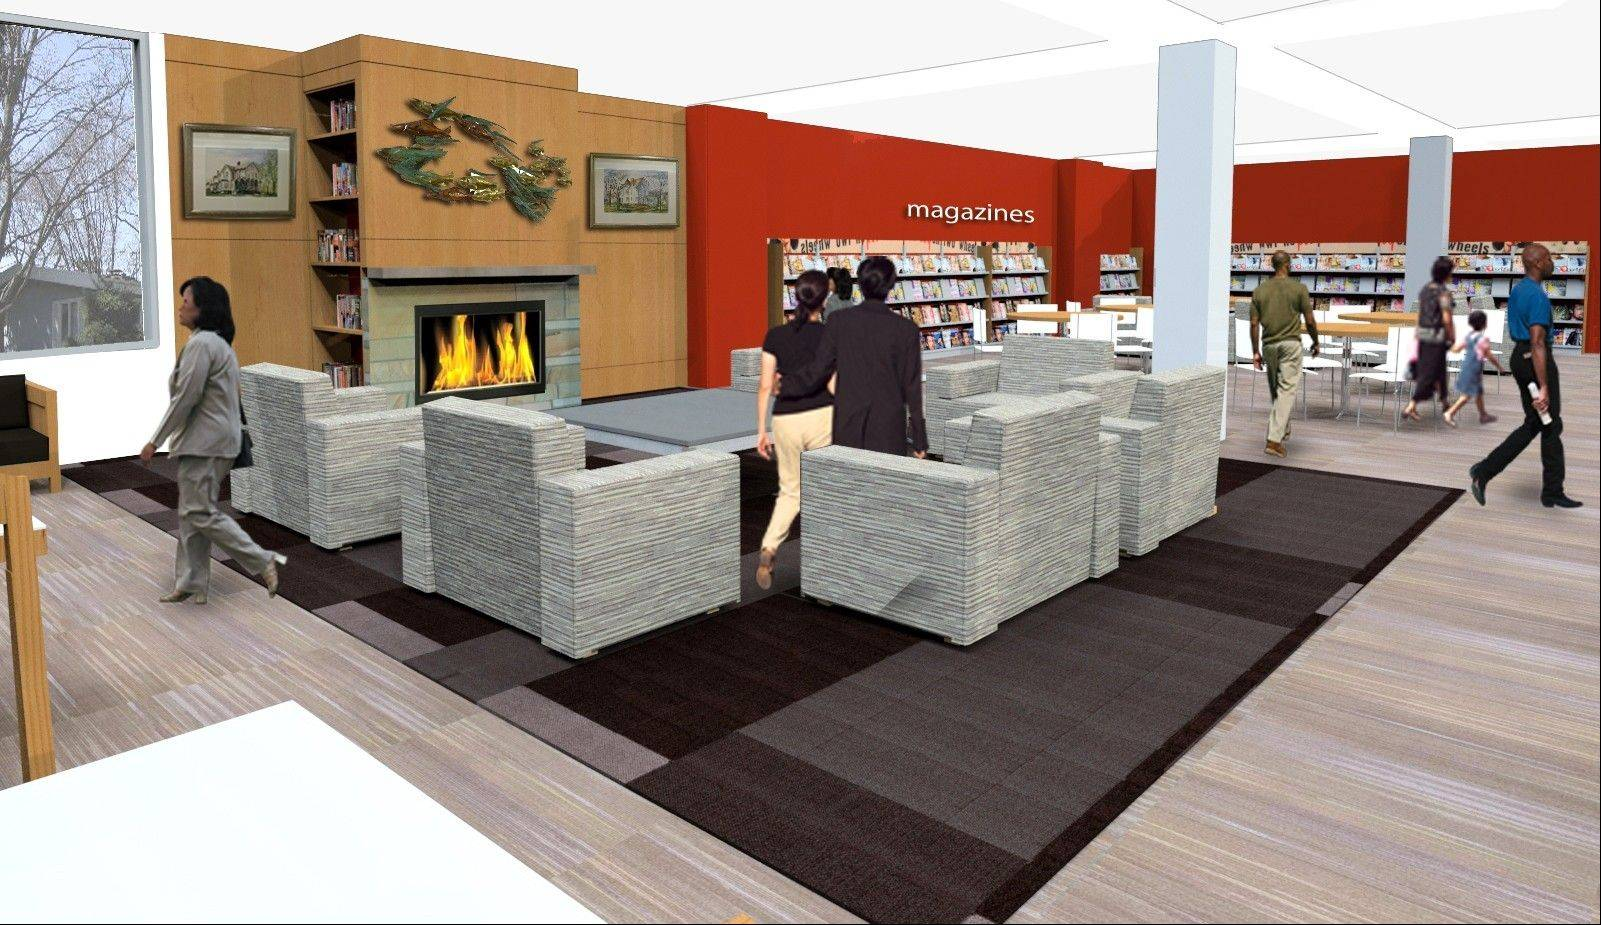 The library�s new �living room�, where visitors can relax in lounge furniture in front of a fireplace, is part of a $2.8 million renovation plan approved by the Arlington Heights Memorial Library board this week.